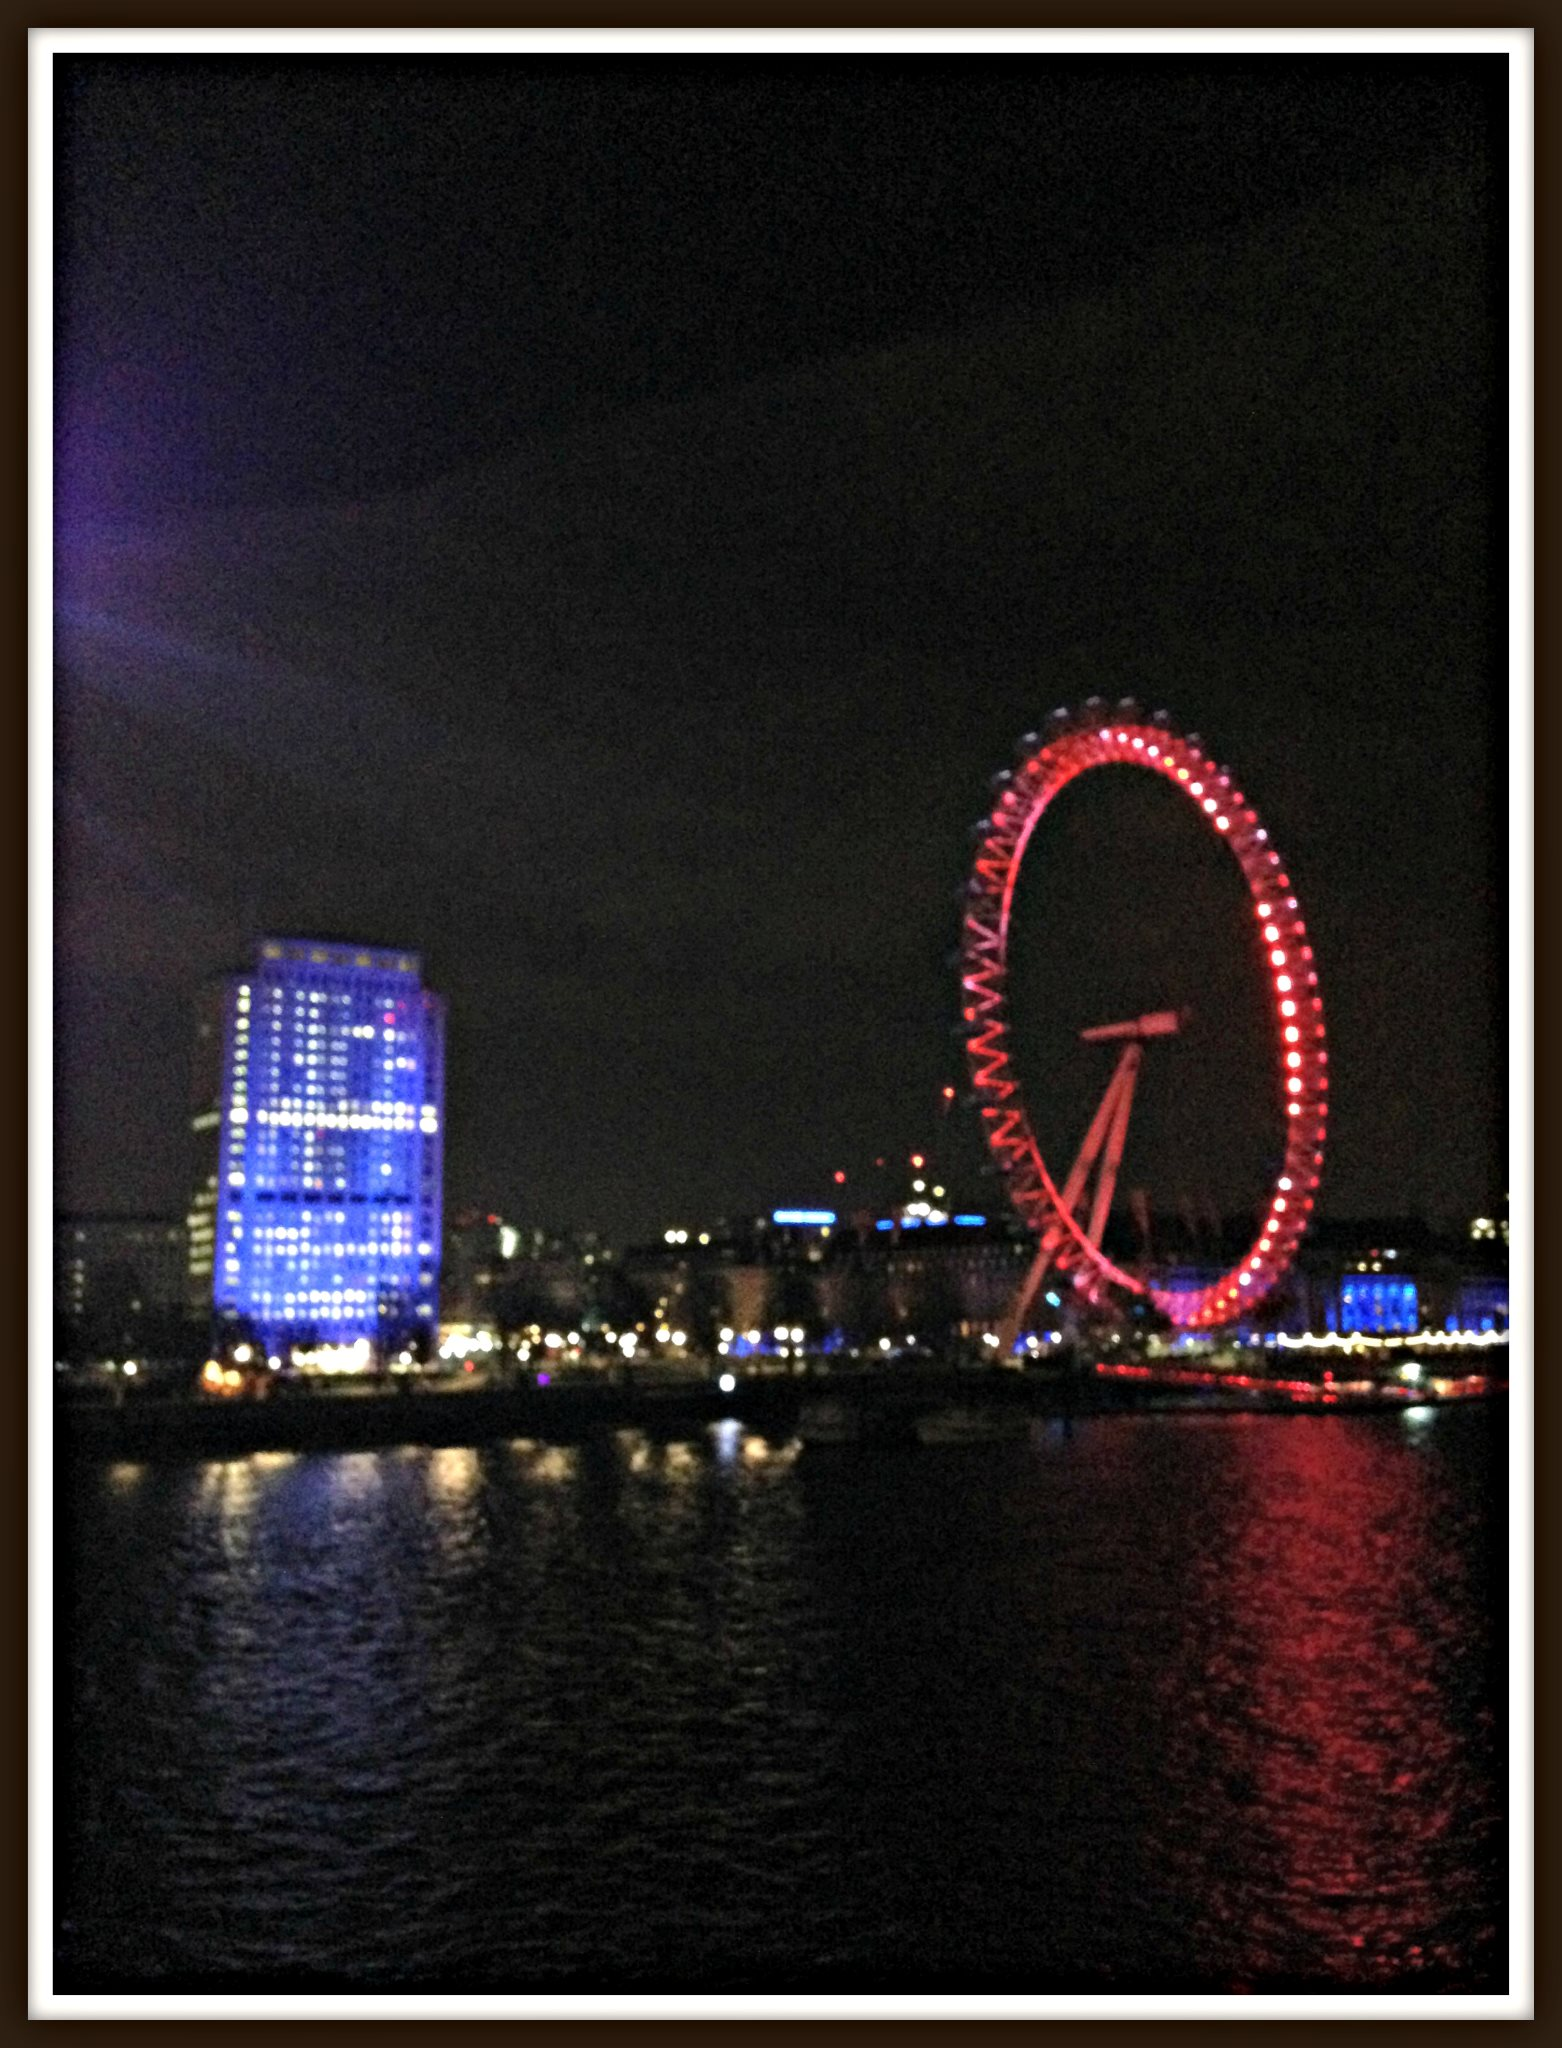 Another London night-time scene